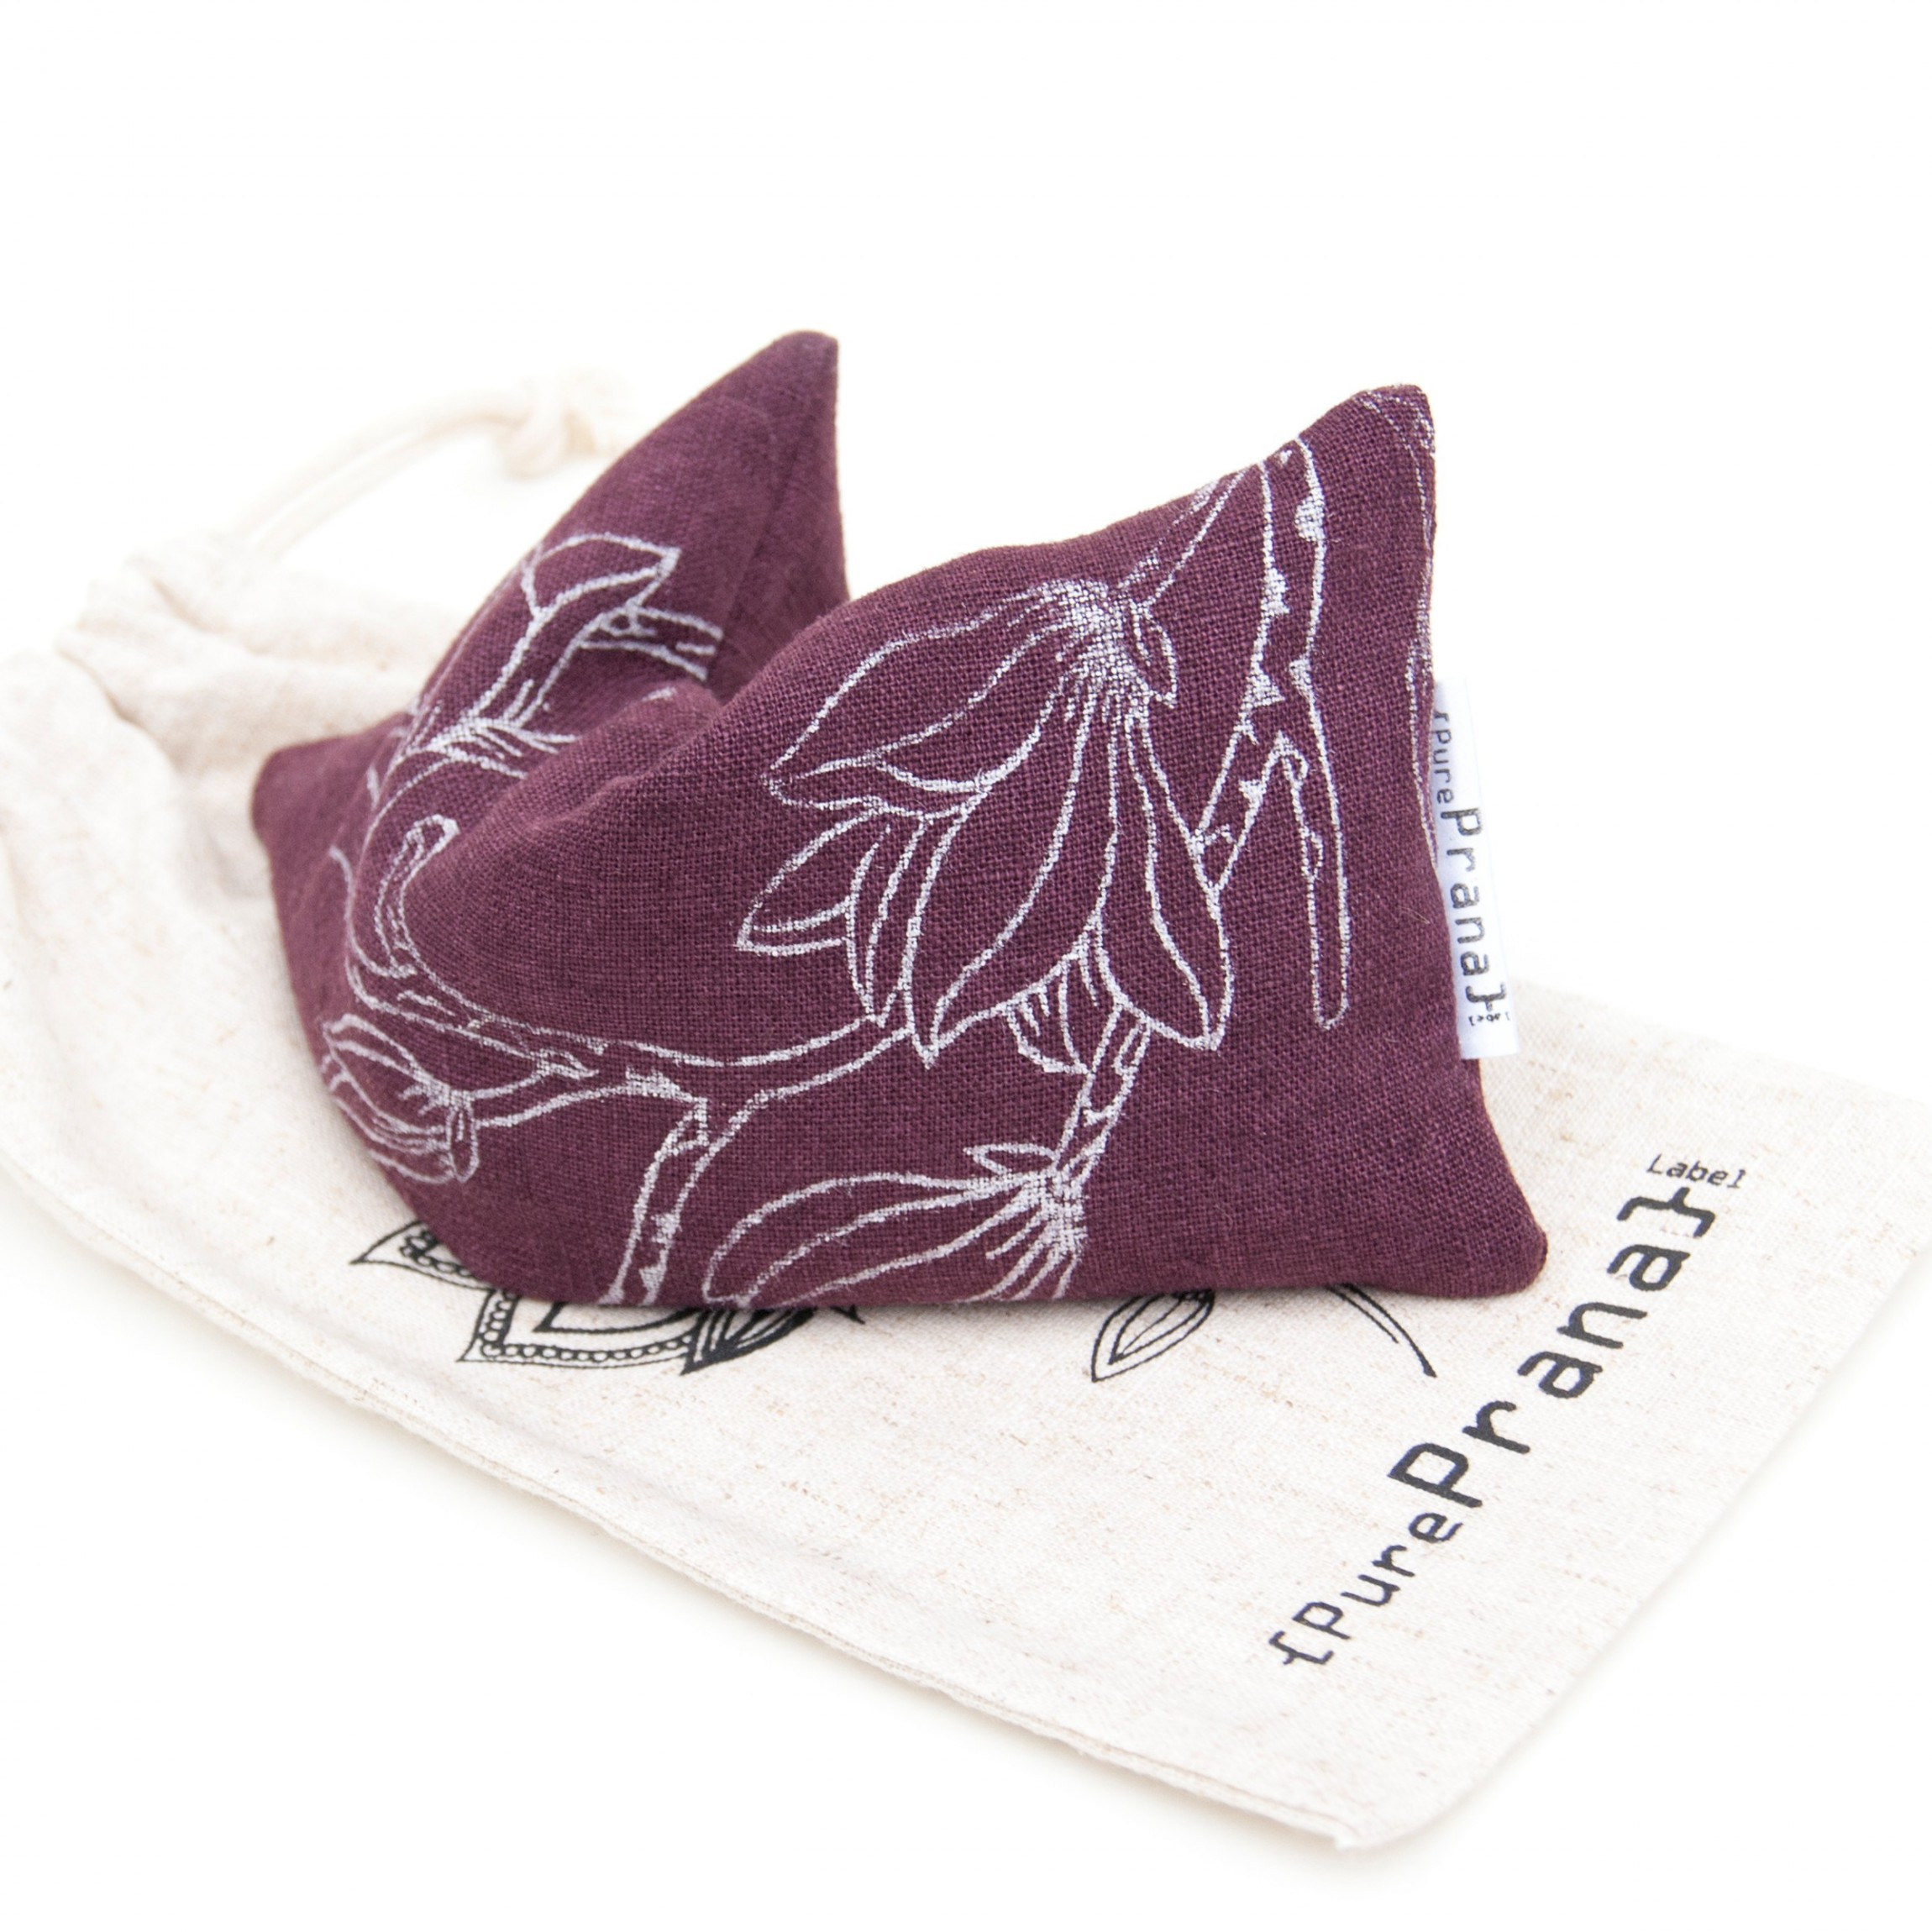 Yoga eye pillow magnolia in eggplant